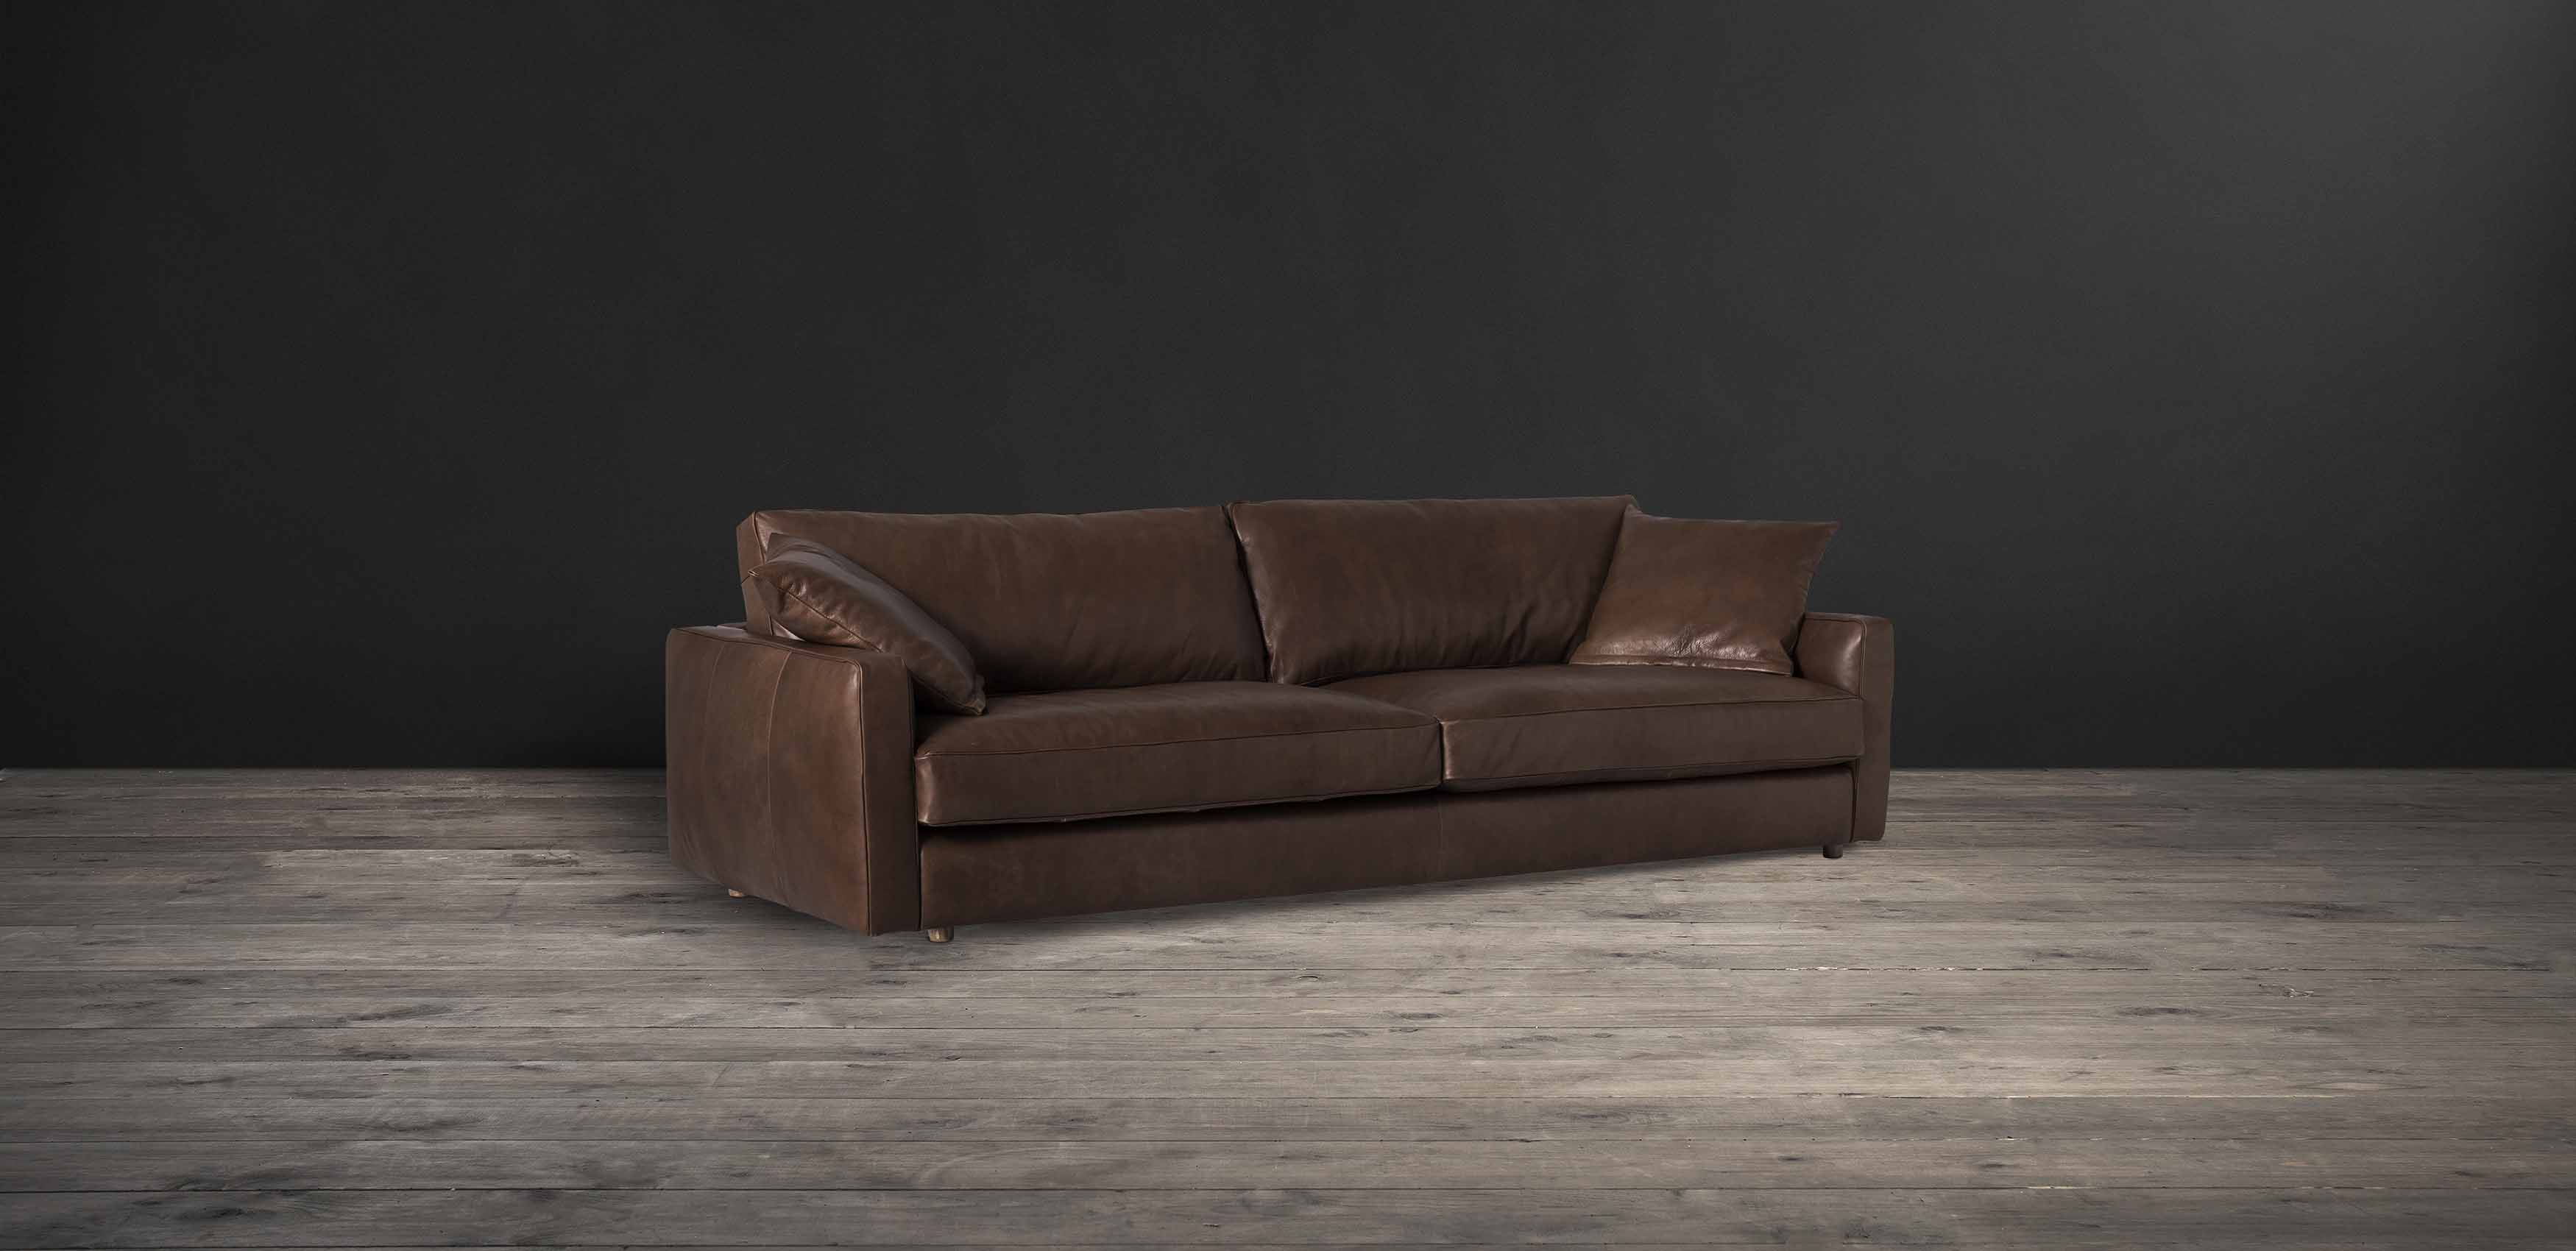 Beatnik Sofa - Timothy Oulton Sofa